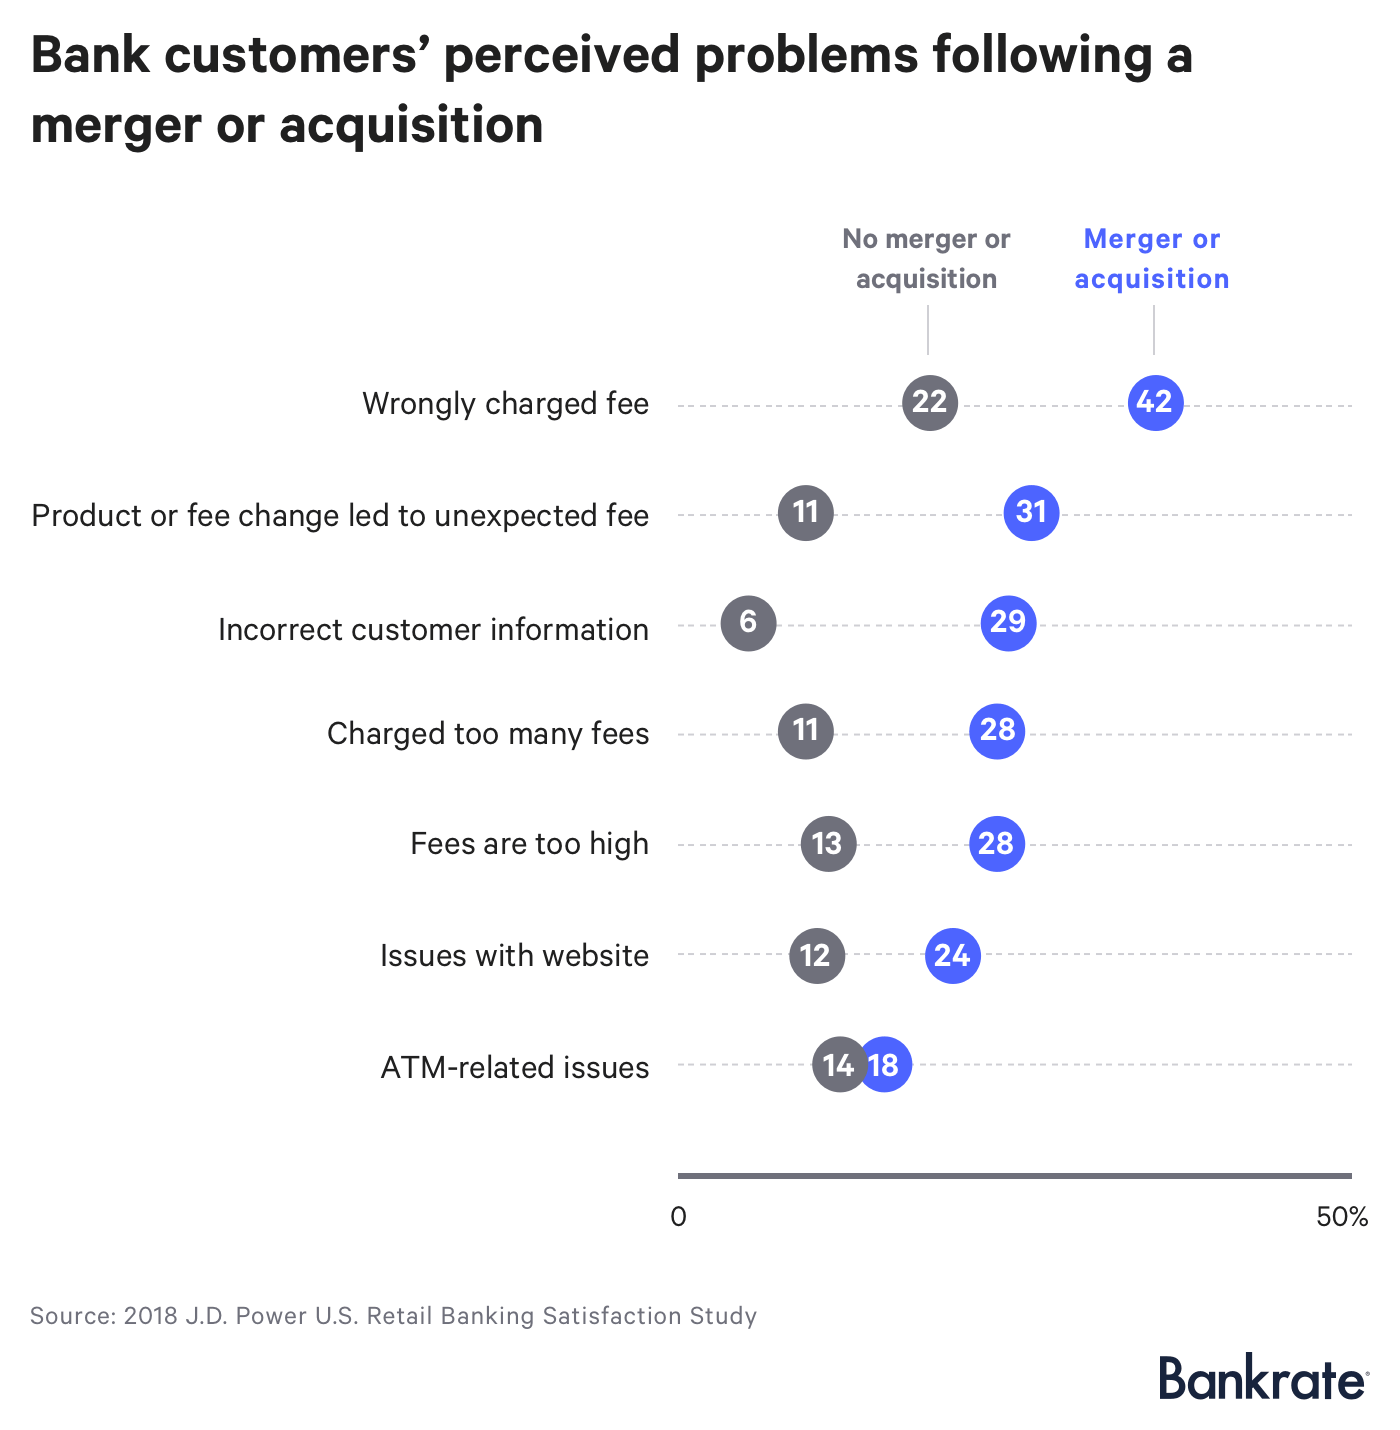 Chart: Bank customers' perceived problems following a merger or acquisition